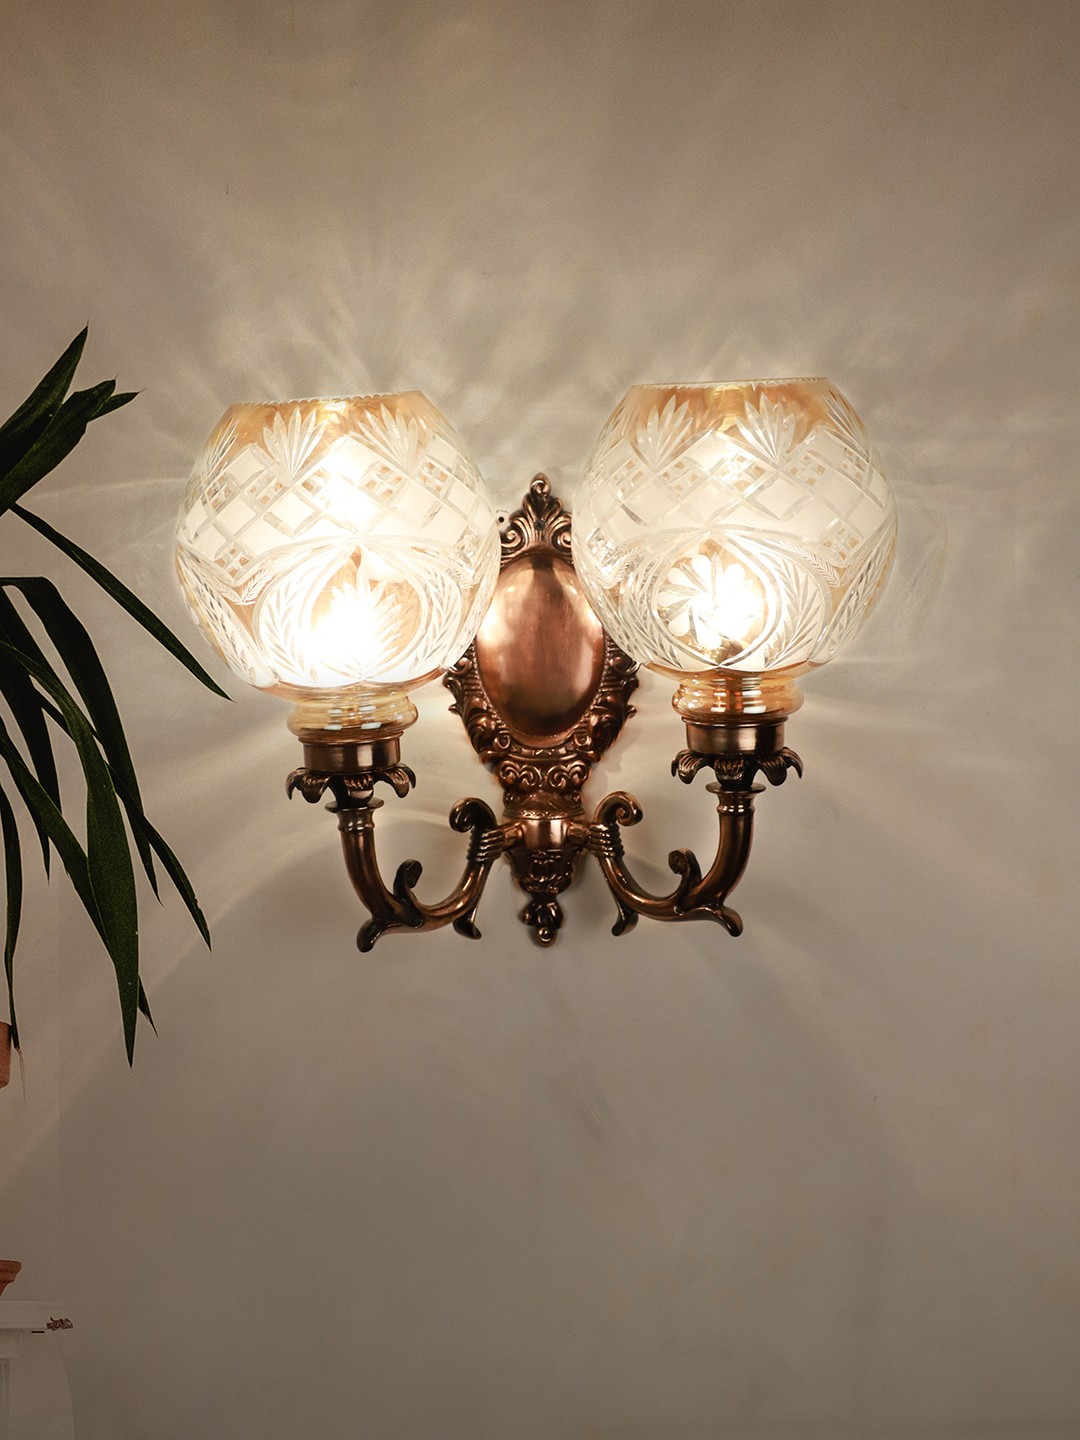 Antique Copper Finished Traditional 2 Light Wall Sconce with Golden Hand Cut Glass Shades